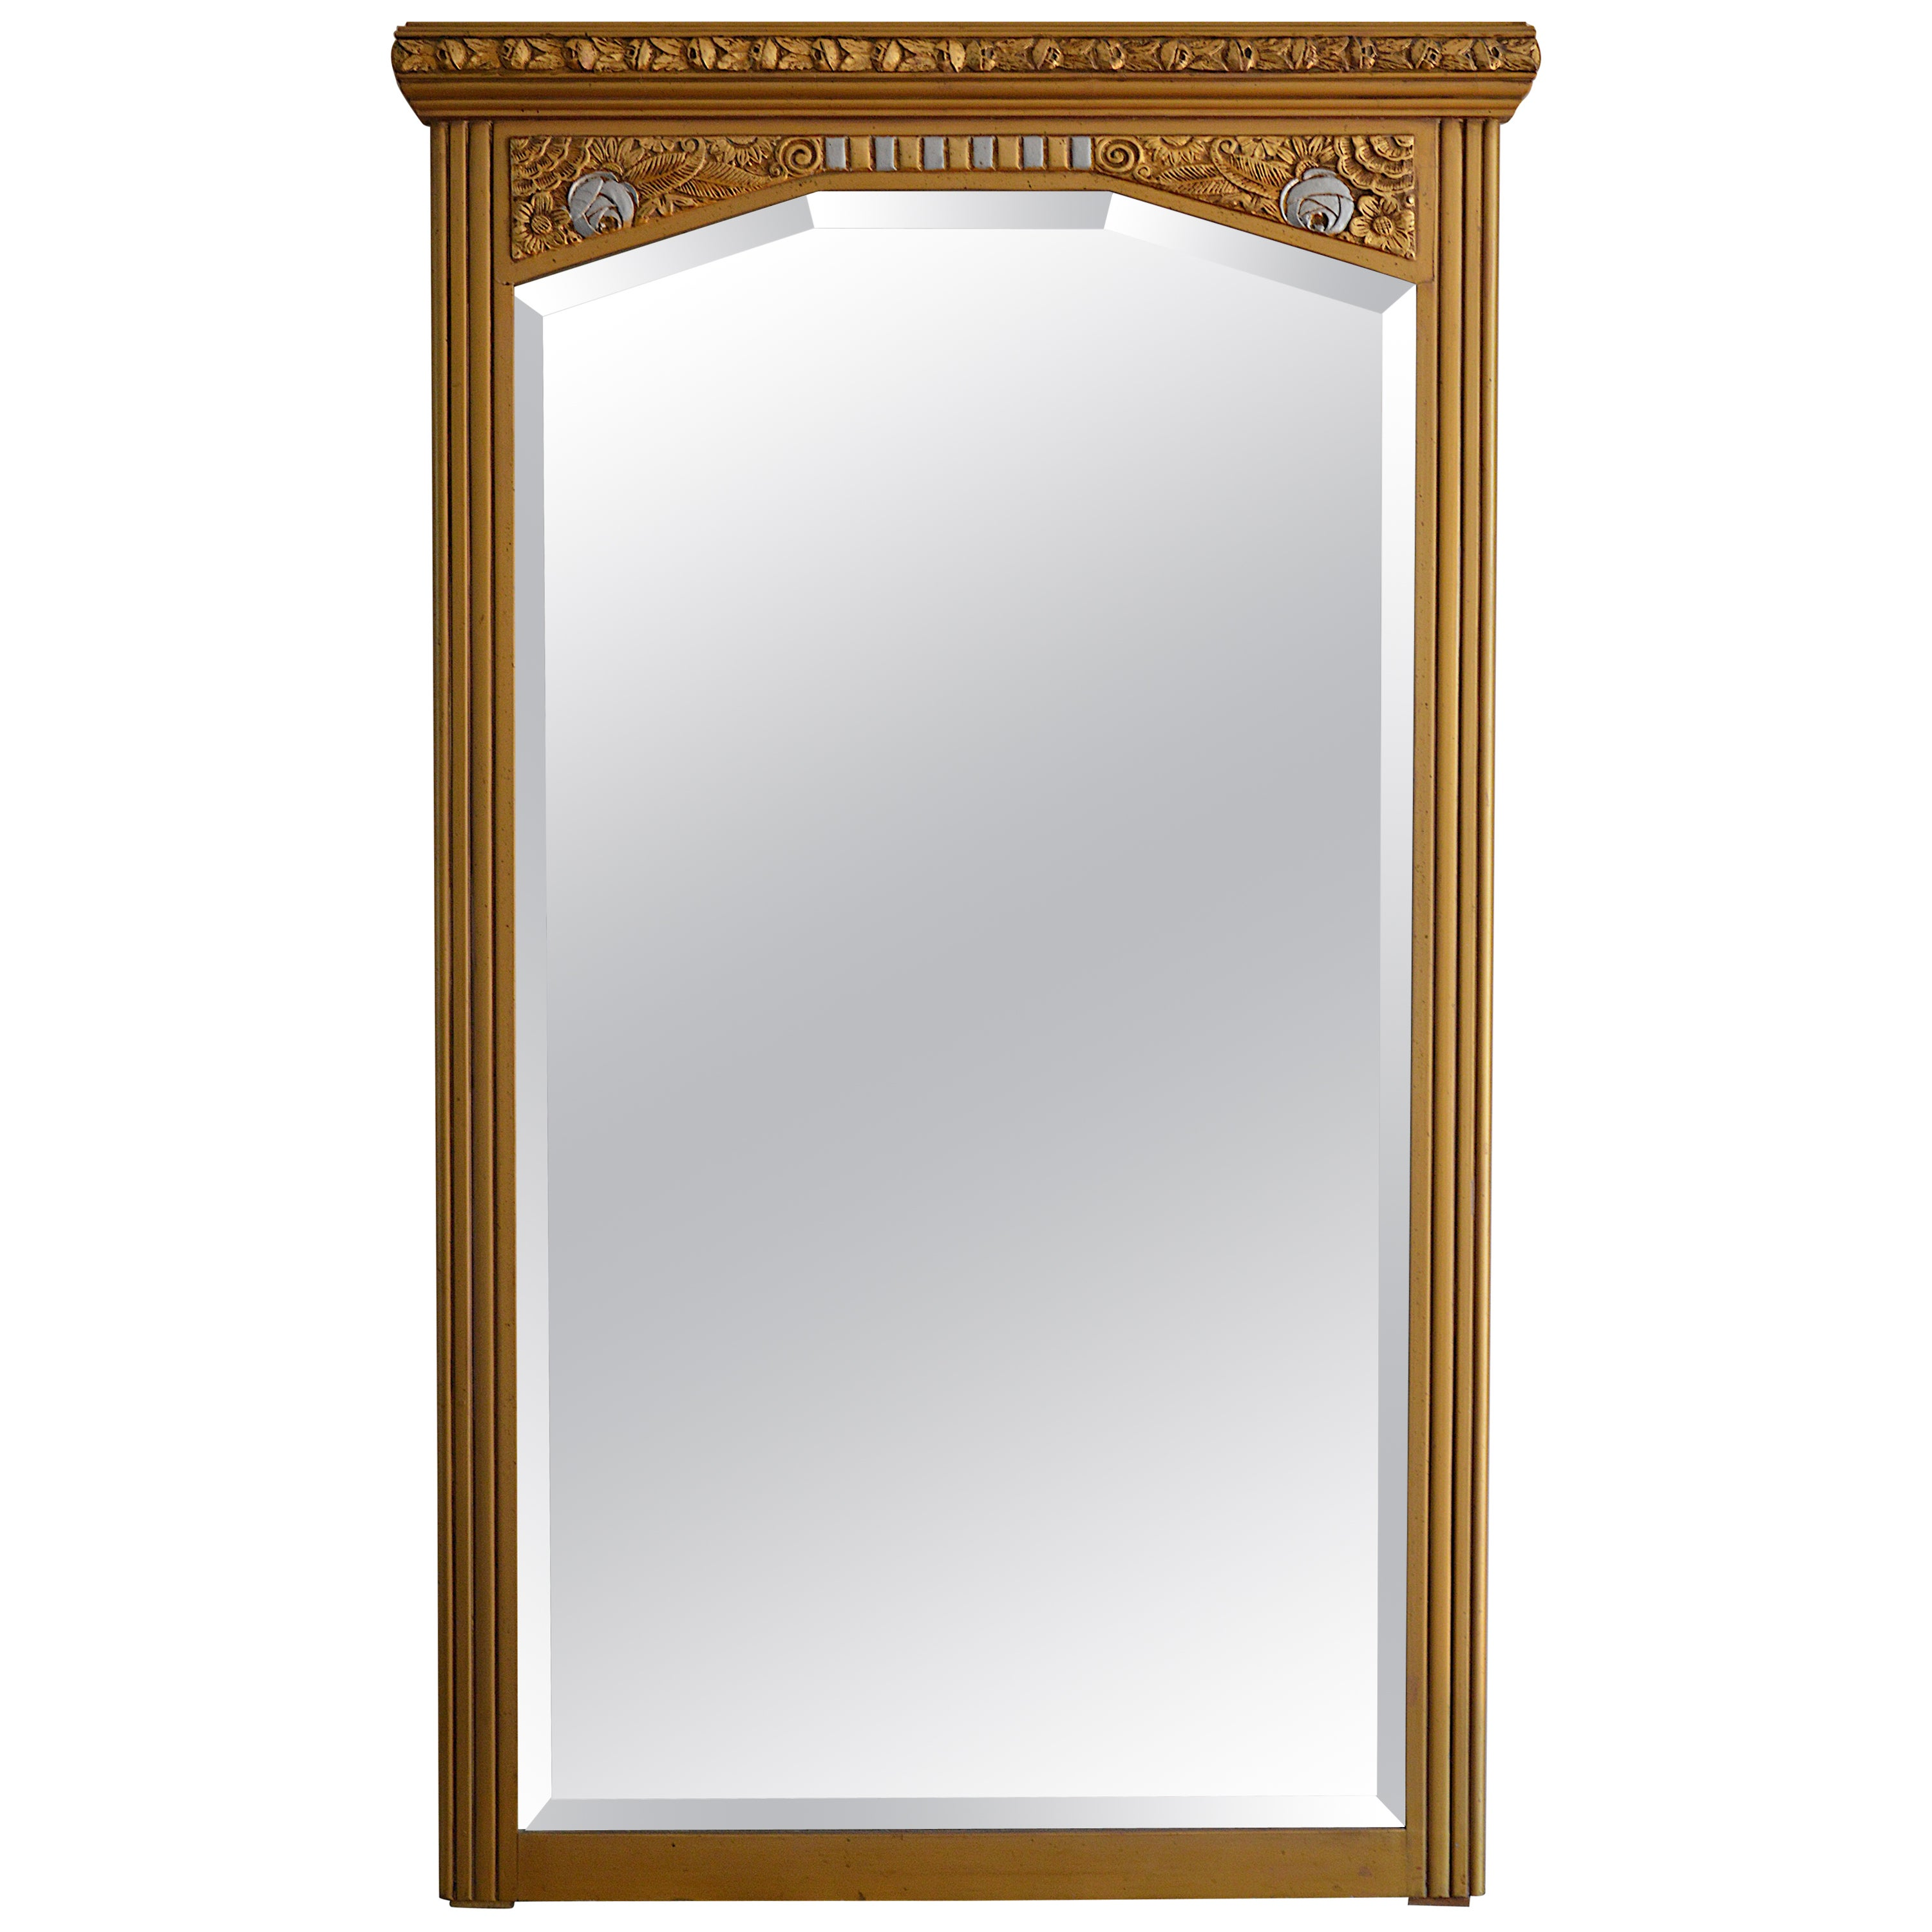 Large french art deco wall mirror 1933 for sale at 1stdibs